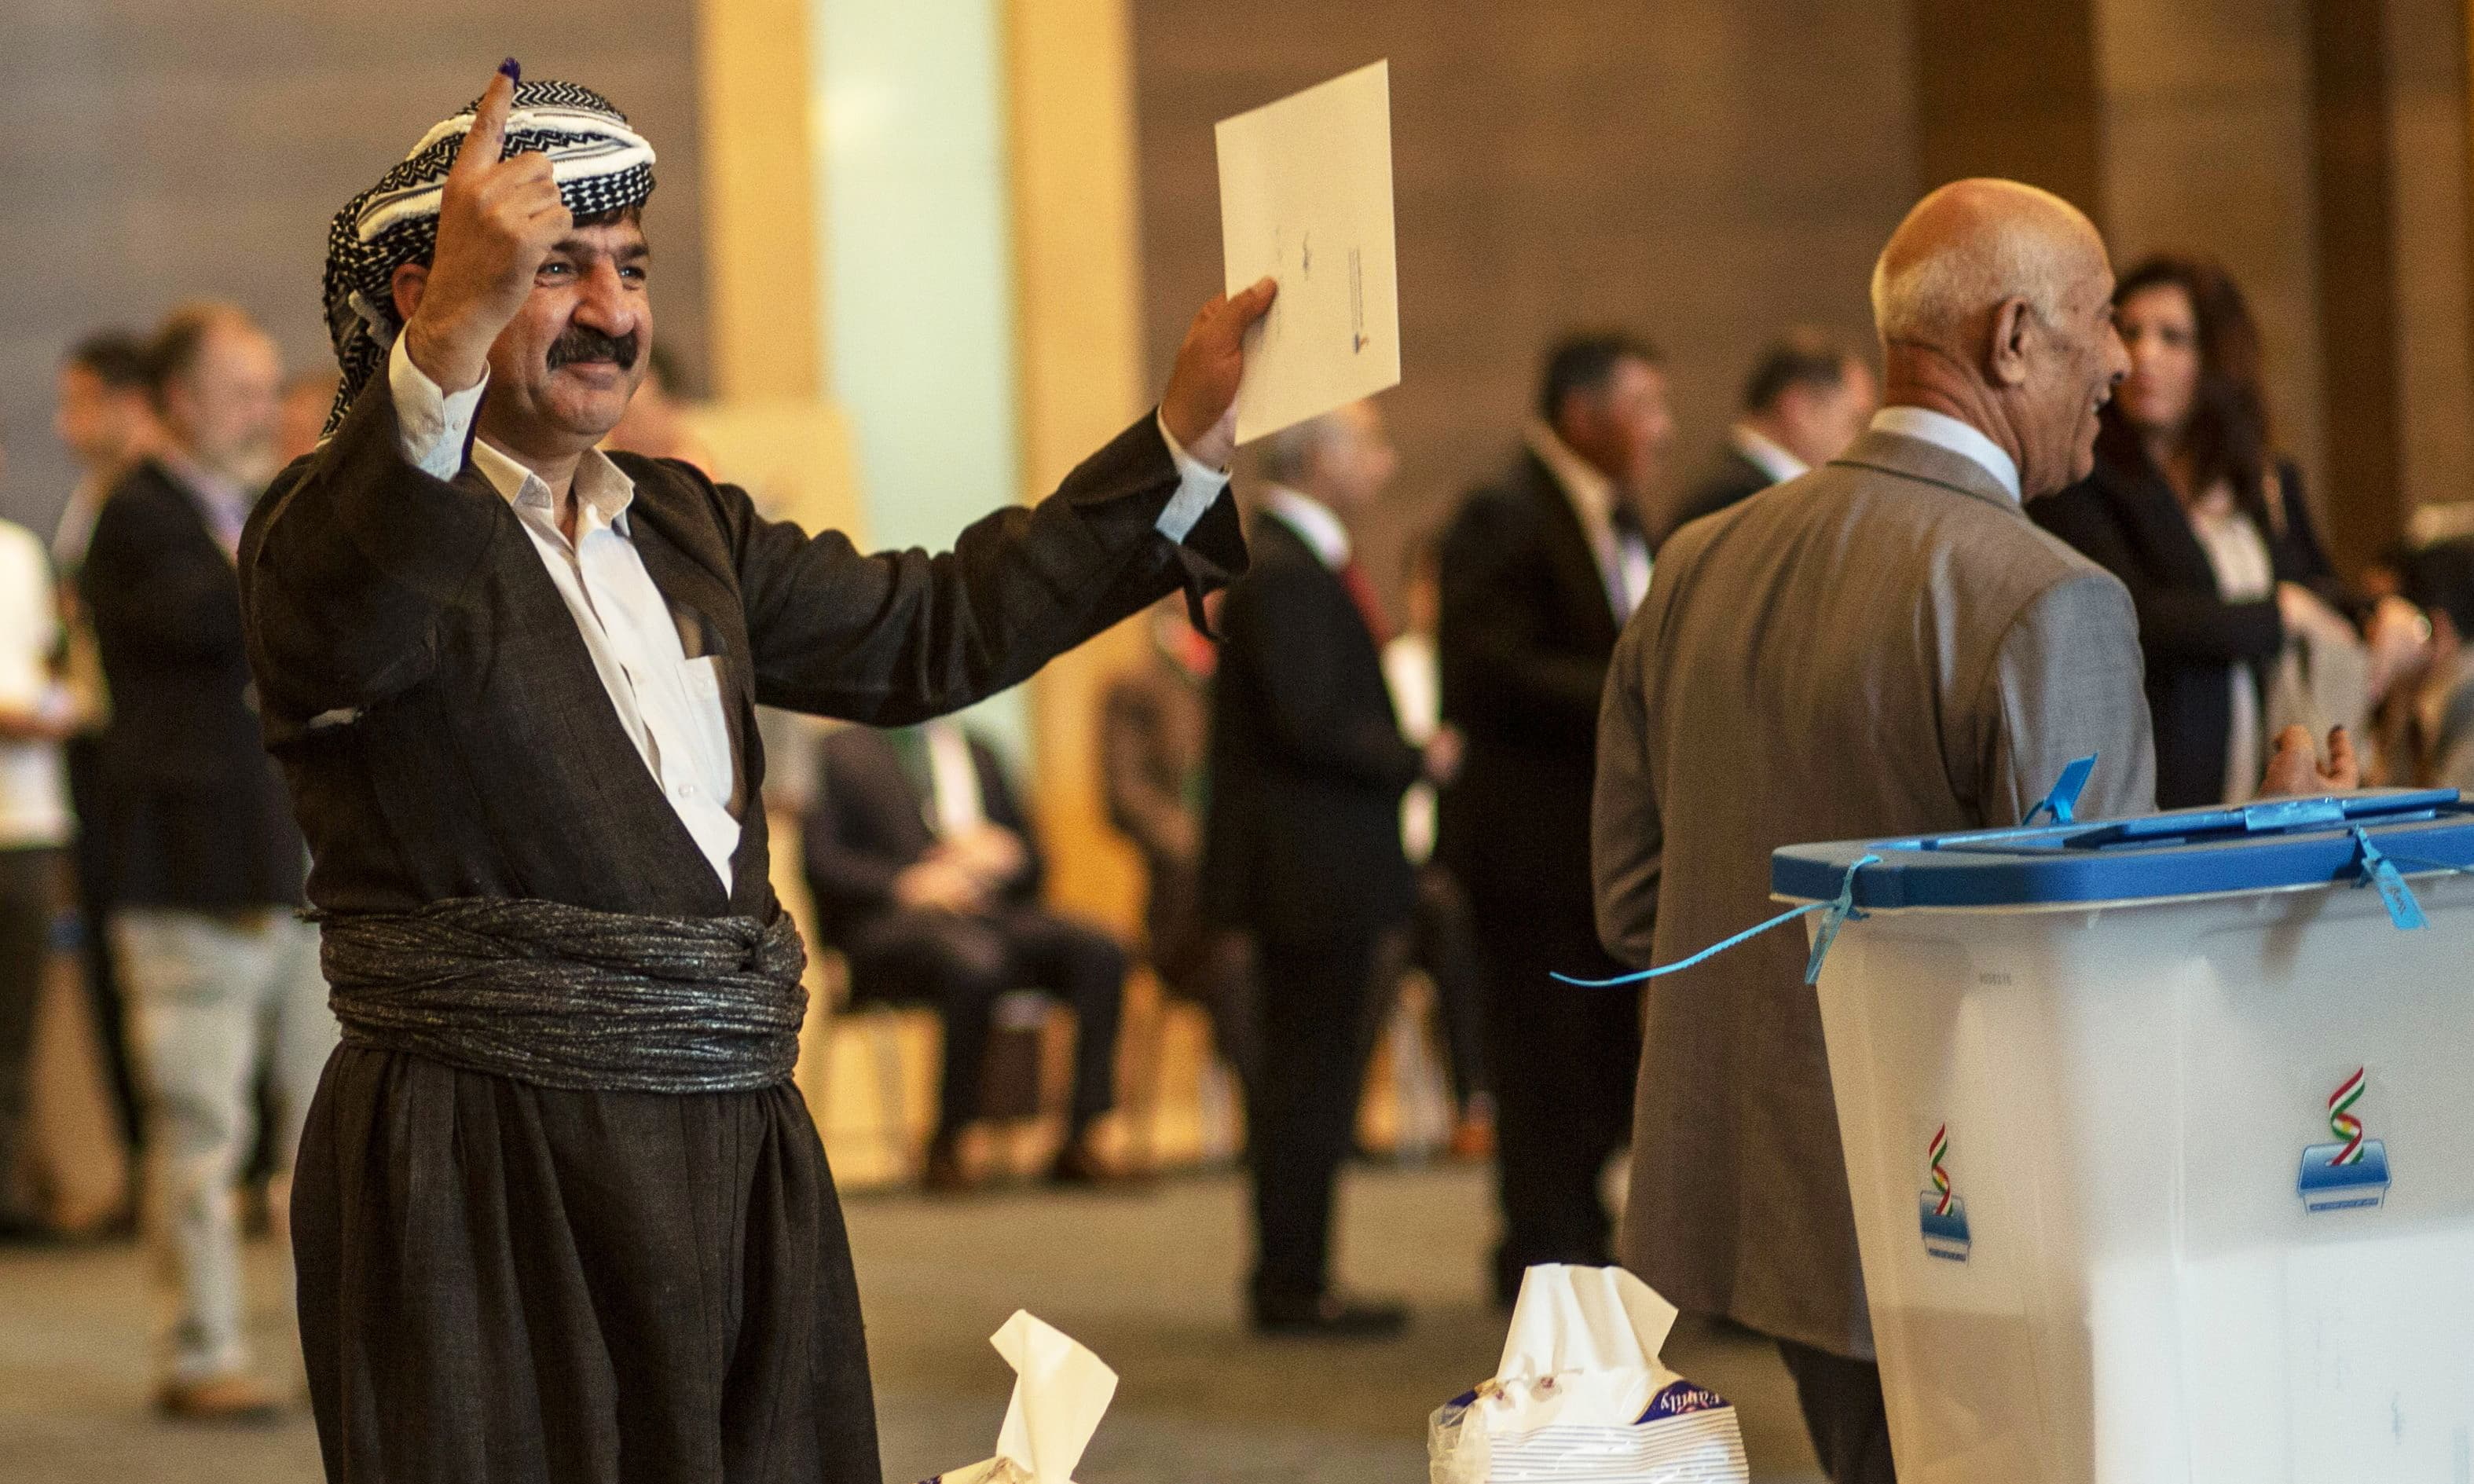 An officials of Kurdistan Regional Government (KRG) shows his ink-stained finger after casting his vote in the Kurdish independence referendum at a hotel in Arbil on September 25, 2017.  Iraqi Kurds voted in an independence referendum, defying warnings from Baghdad and their neighbours in a historic step towards a national dream. / AFP PHOTO / Emily IRVING-SWIFT AND AHMED DEEB — AFP or licensors